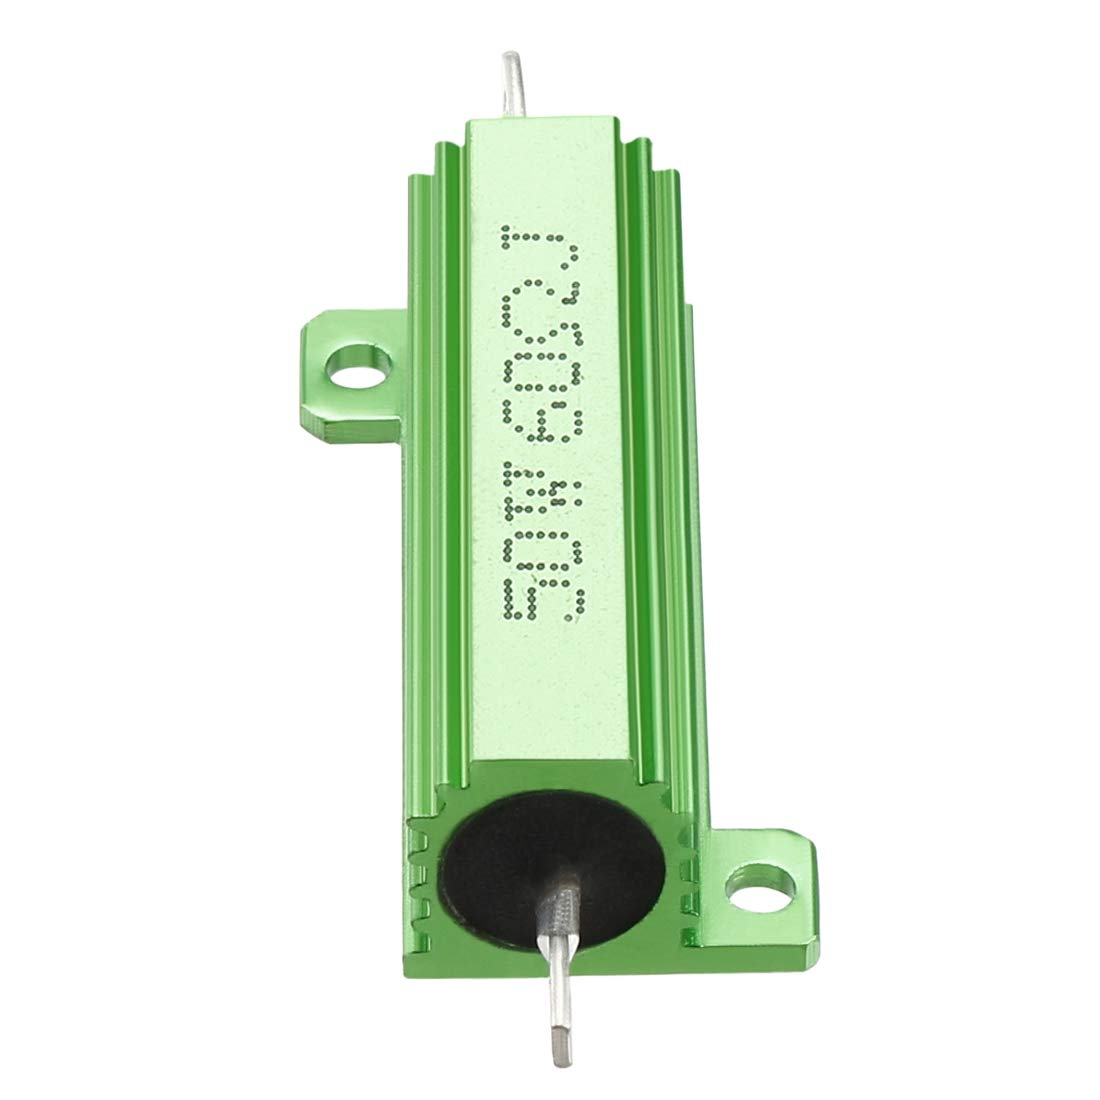 Sourcingmap 50W 60 Ohm 5/% Aluminum Housing Resistor Screw Tap Chassis Mounted Aluminum Case Wirewound Resistor Load Resistors Green 2 pcs